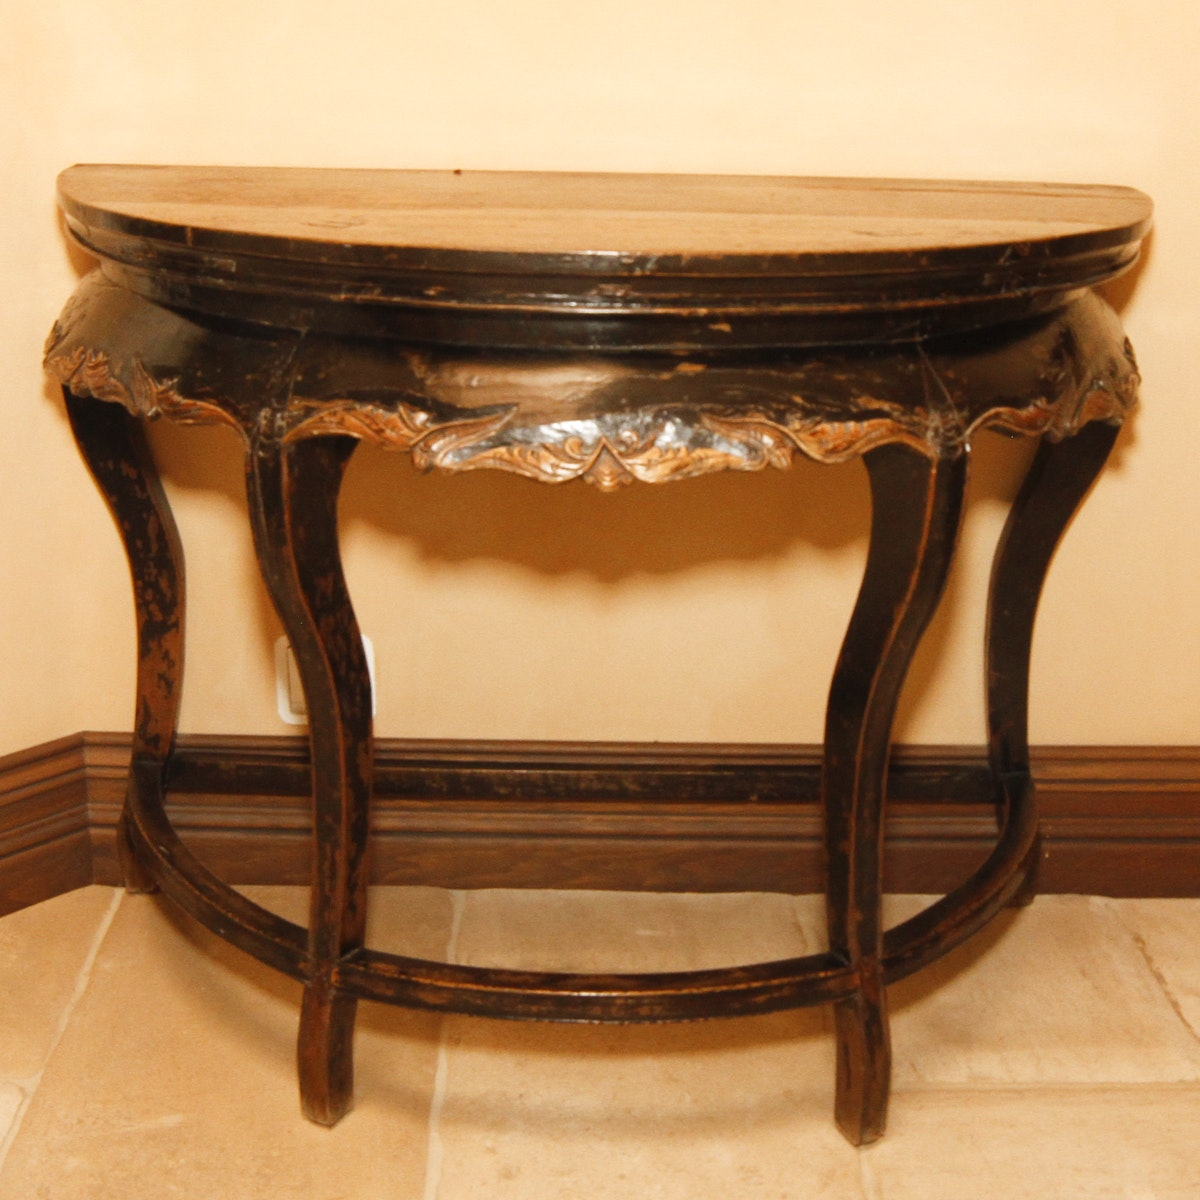 Antique Chinese Demilune Table